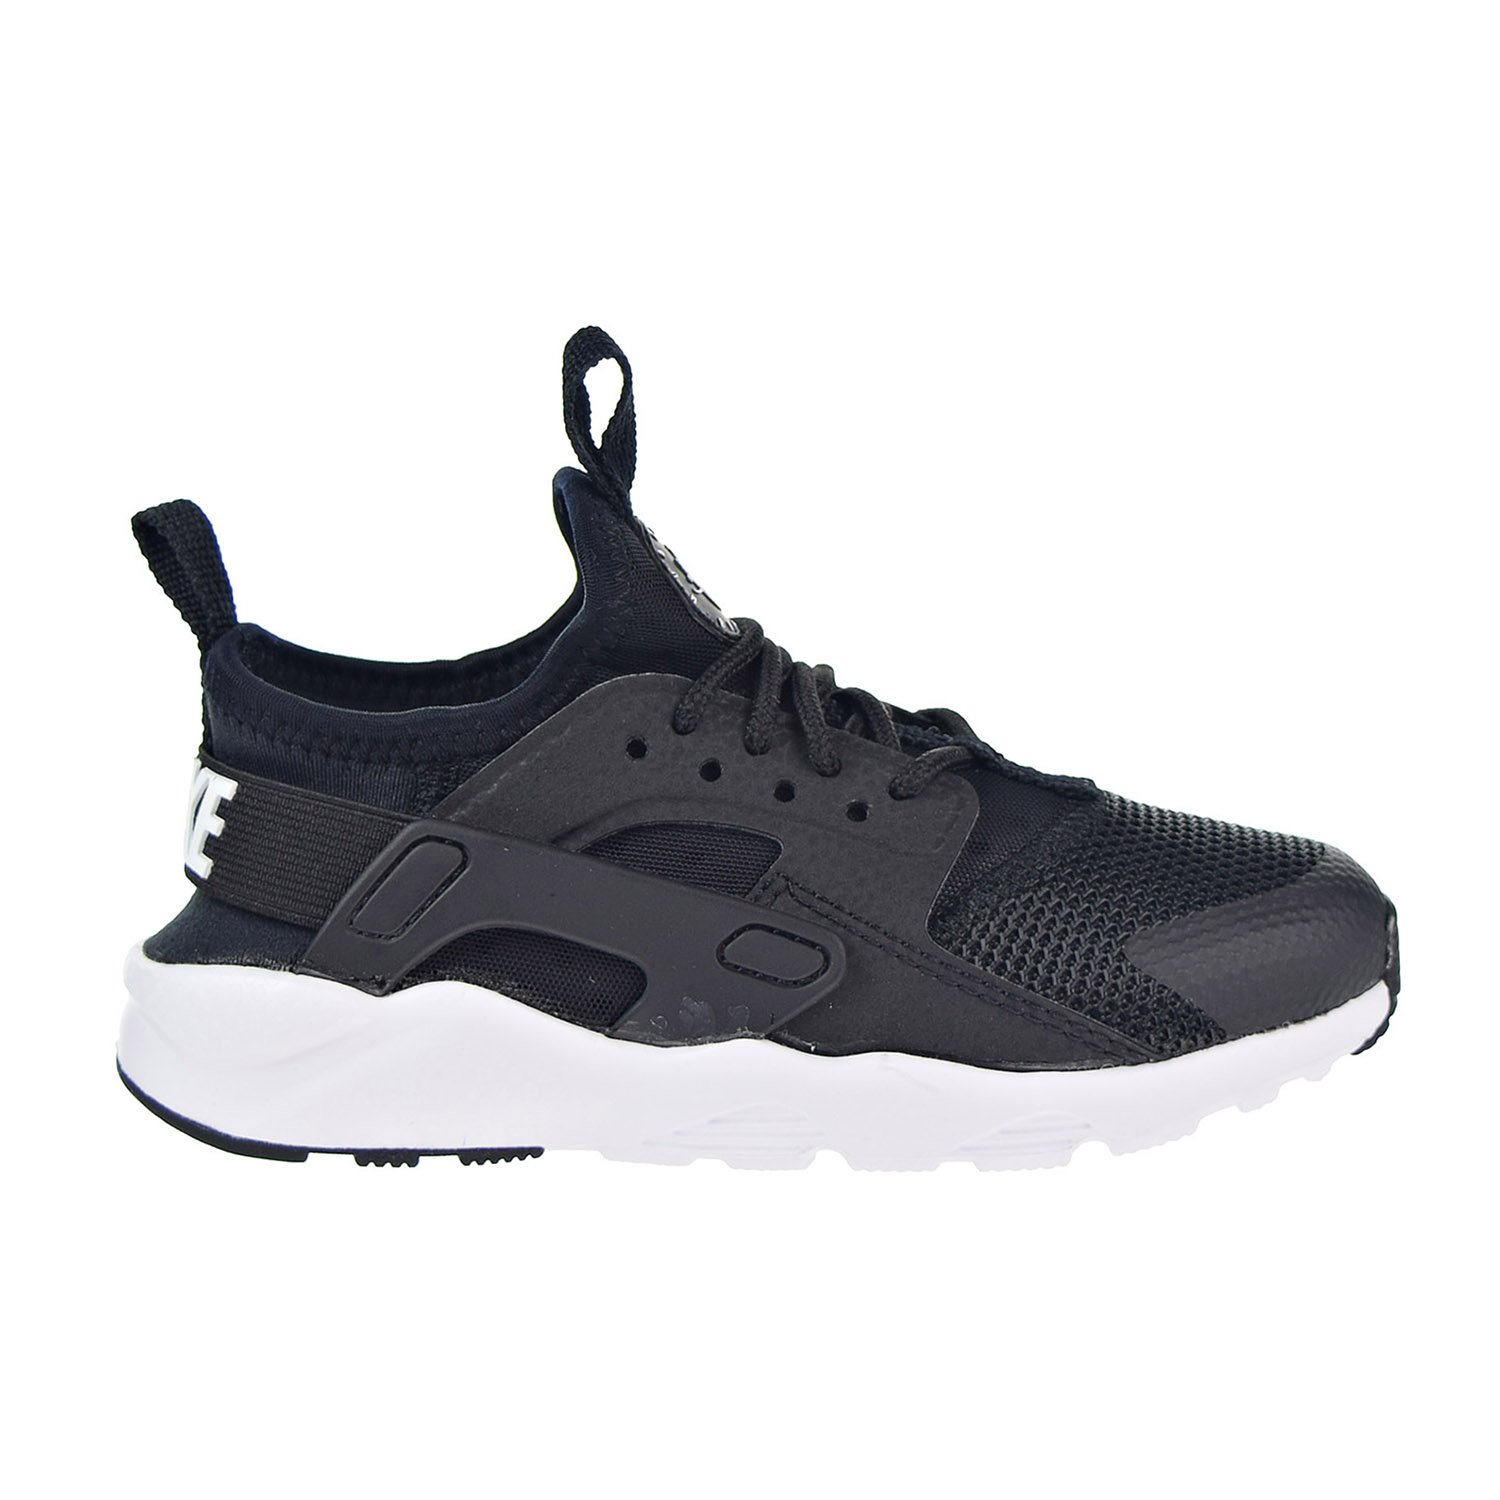 huge selection of 88d07 bdd5f Amazon.com   Nike Huarache Run Ultra Little Kids  Shoes Black White  859593-002 (12 M US)   Sneakers